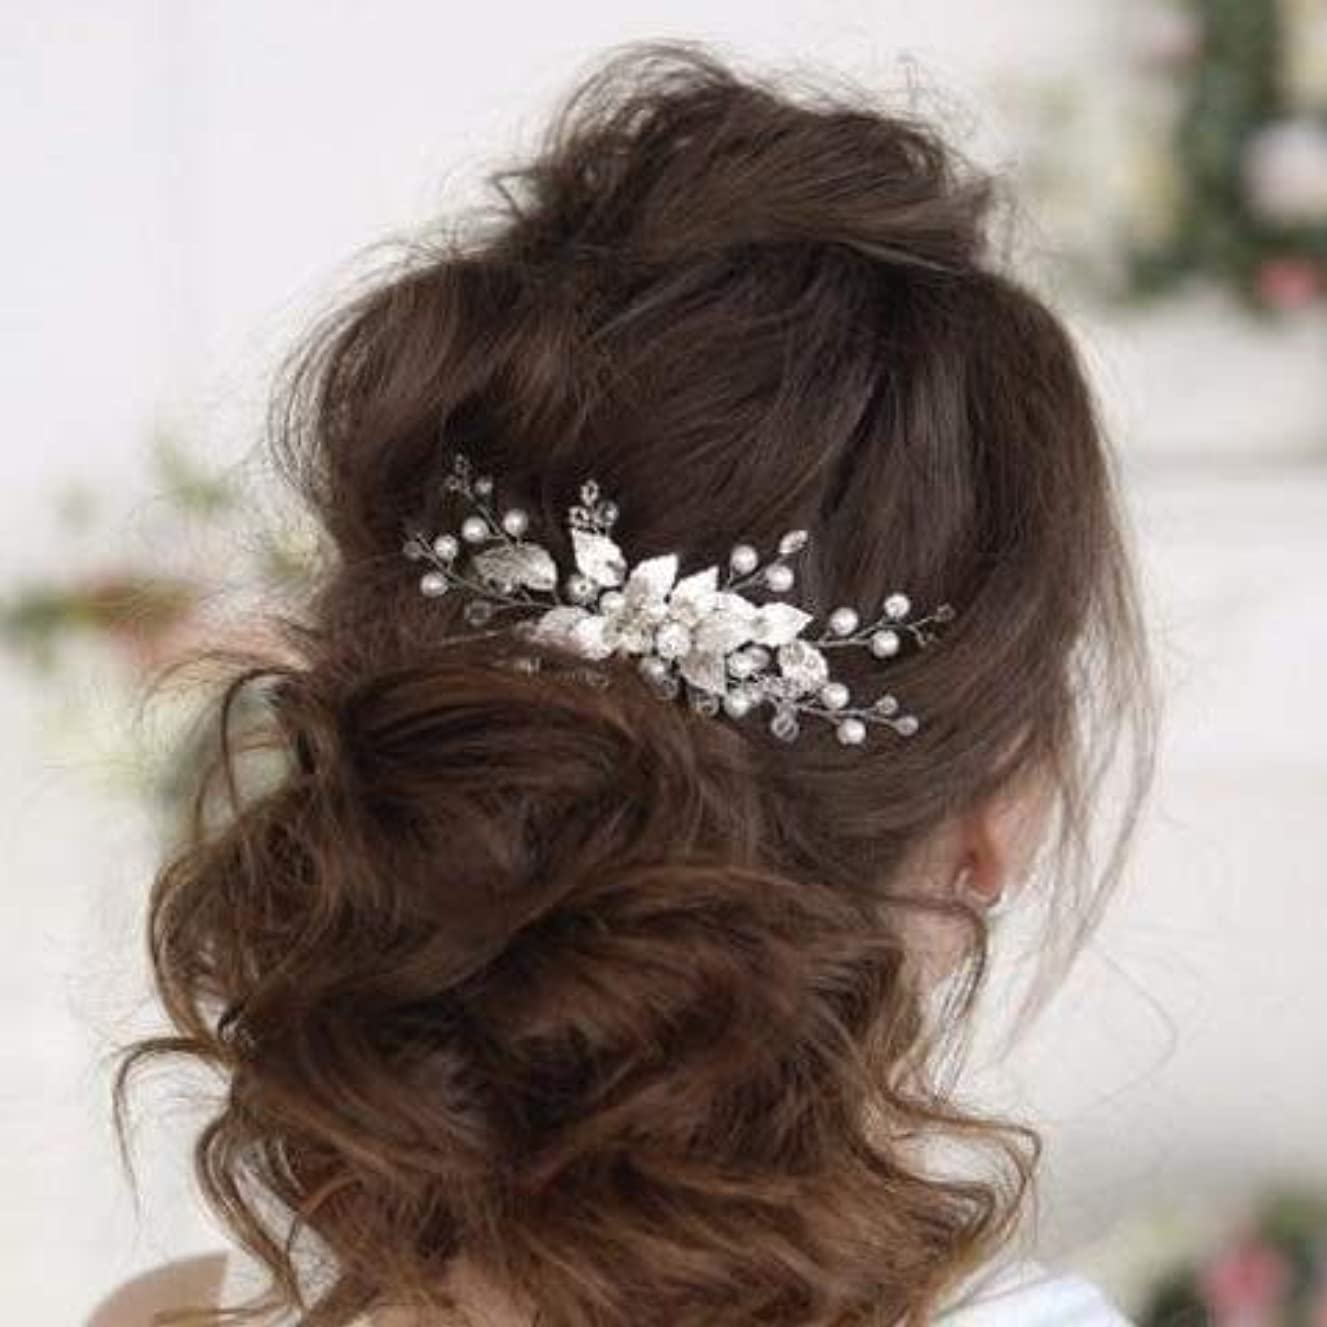 残るディスクヒットKercisbeauty Boho Wedding Bridal Hair Comb Clips Decorative Headband with Crystal Leaf Rhinestones for Brides...